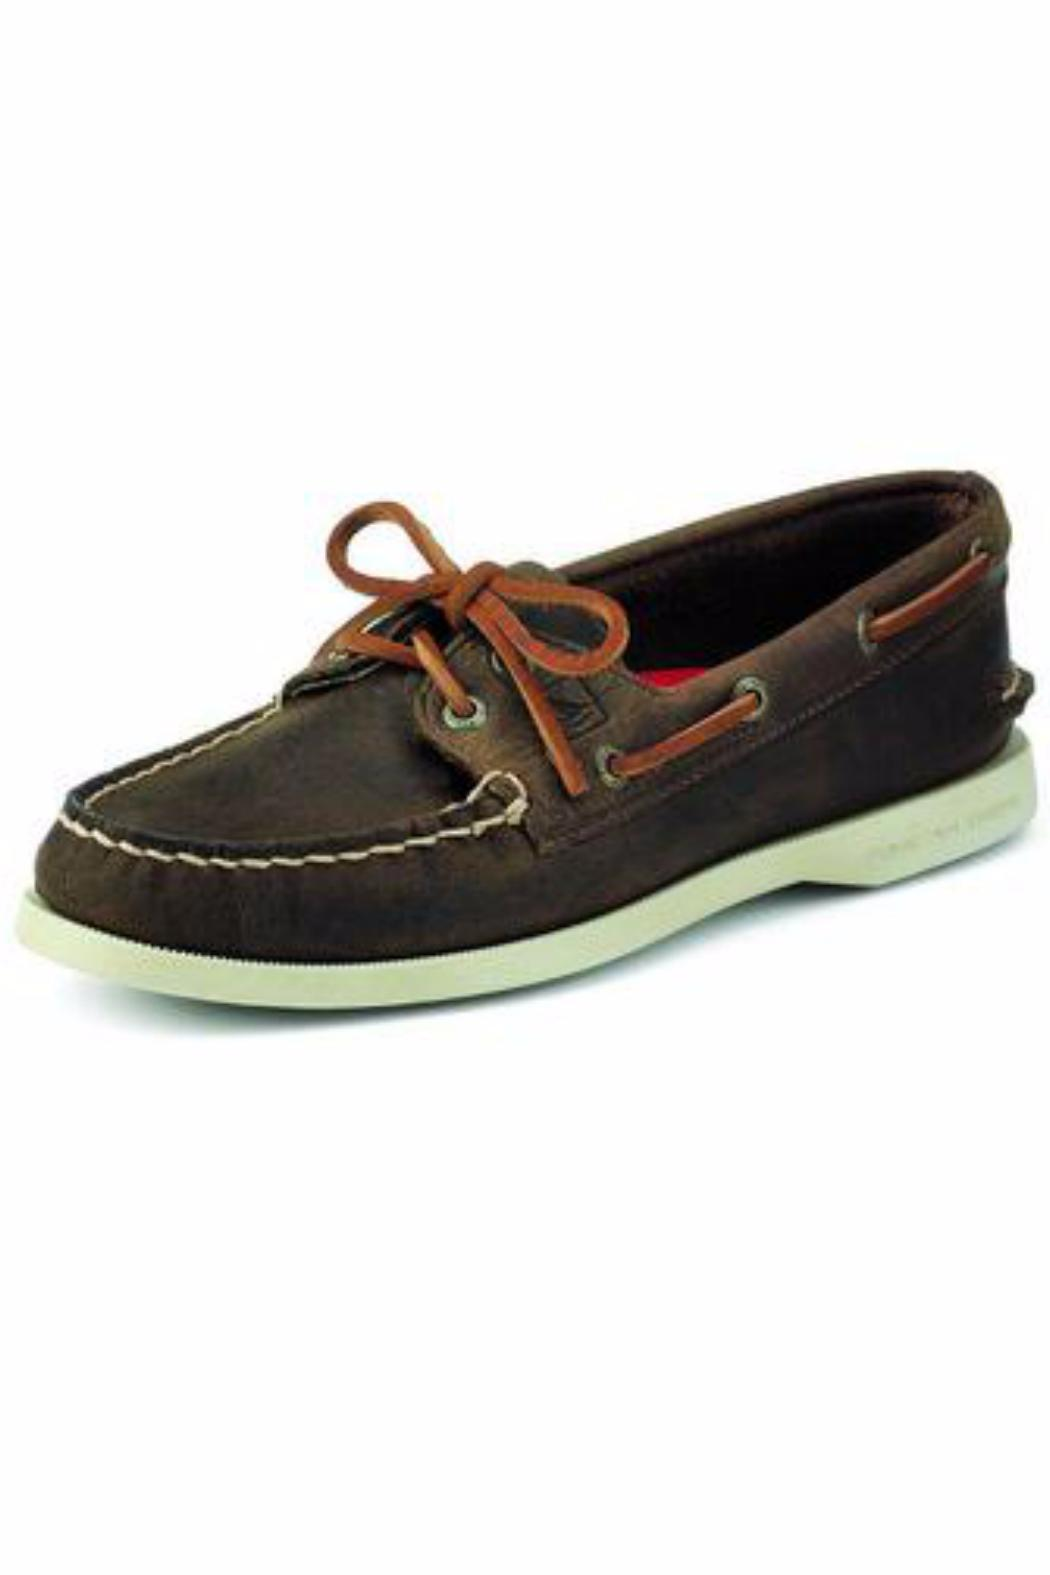 1b12fe06cf0 Sperry Top-Sider Brown Leather Boat-Shoe from New Jersey by Suburban ...